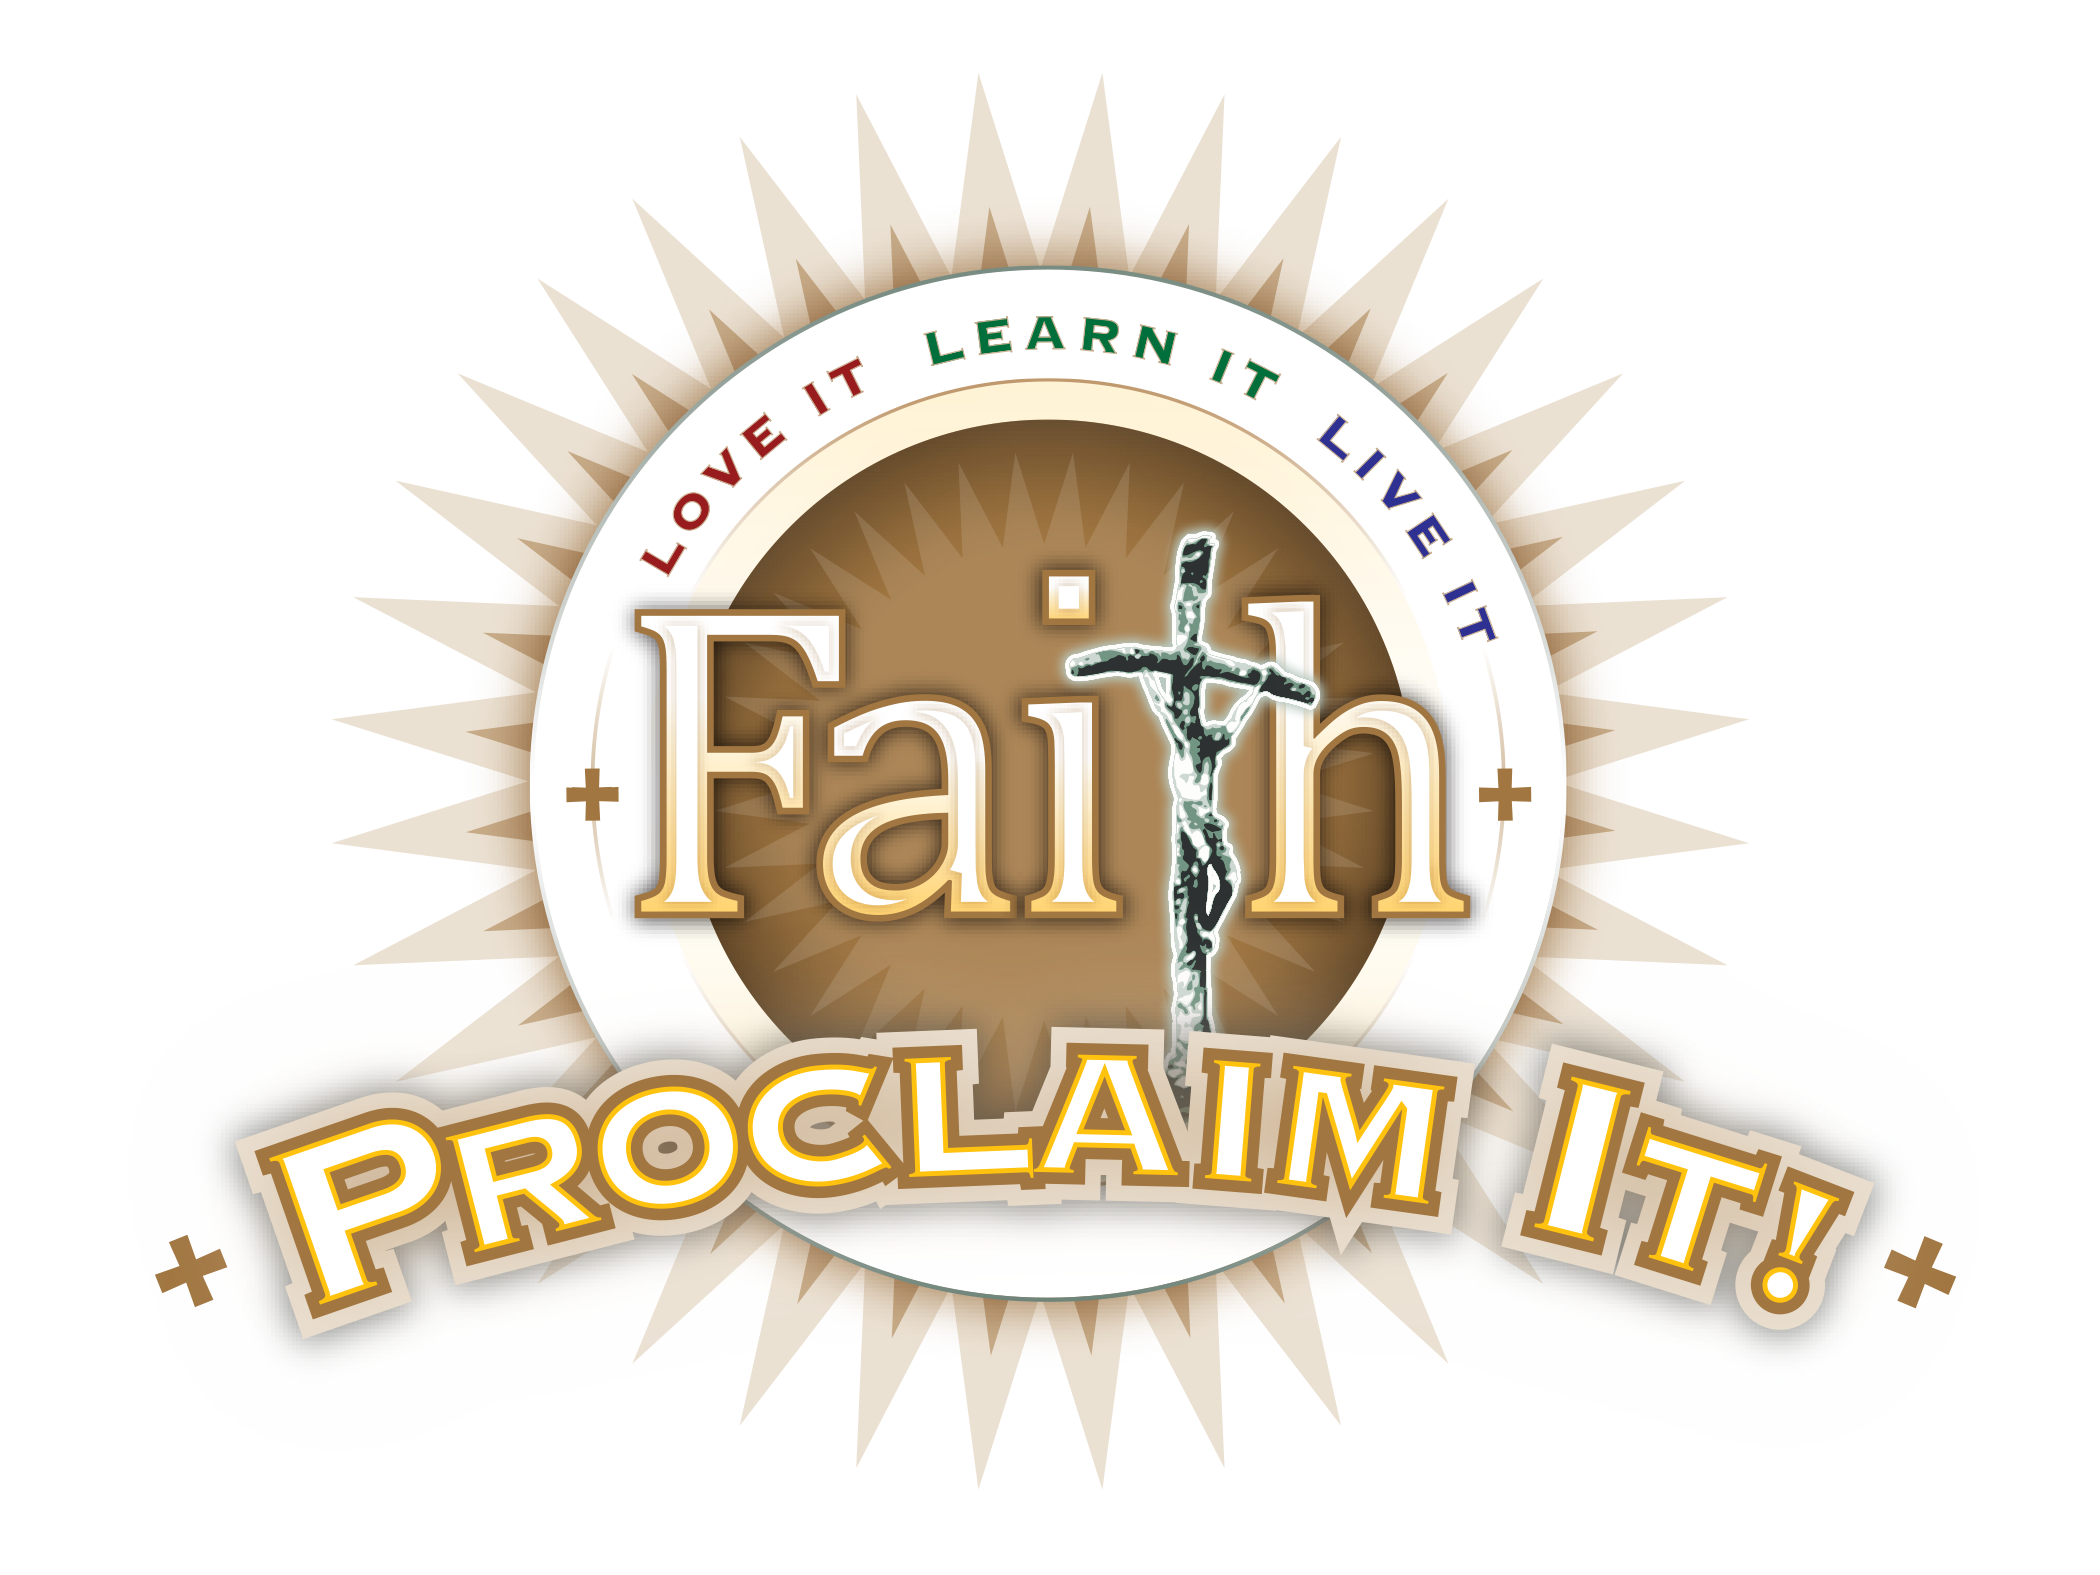 faith_proclaim_it